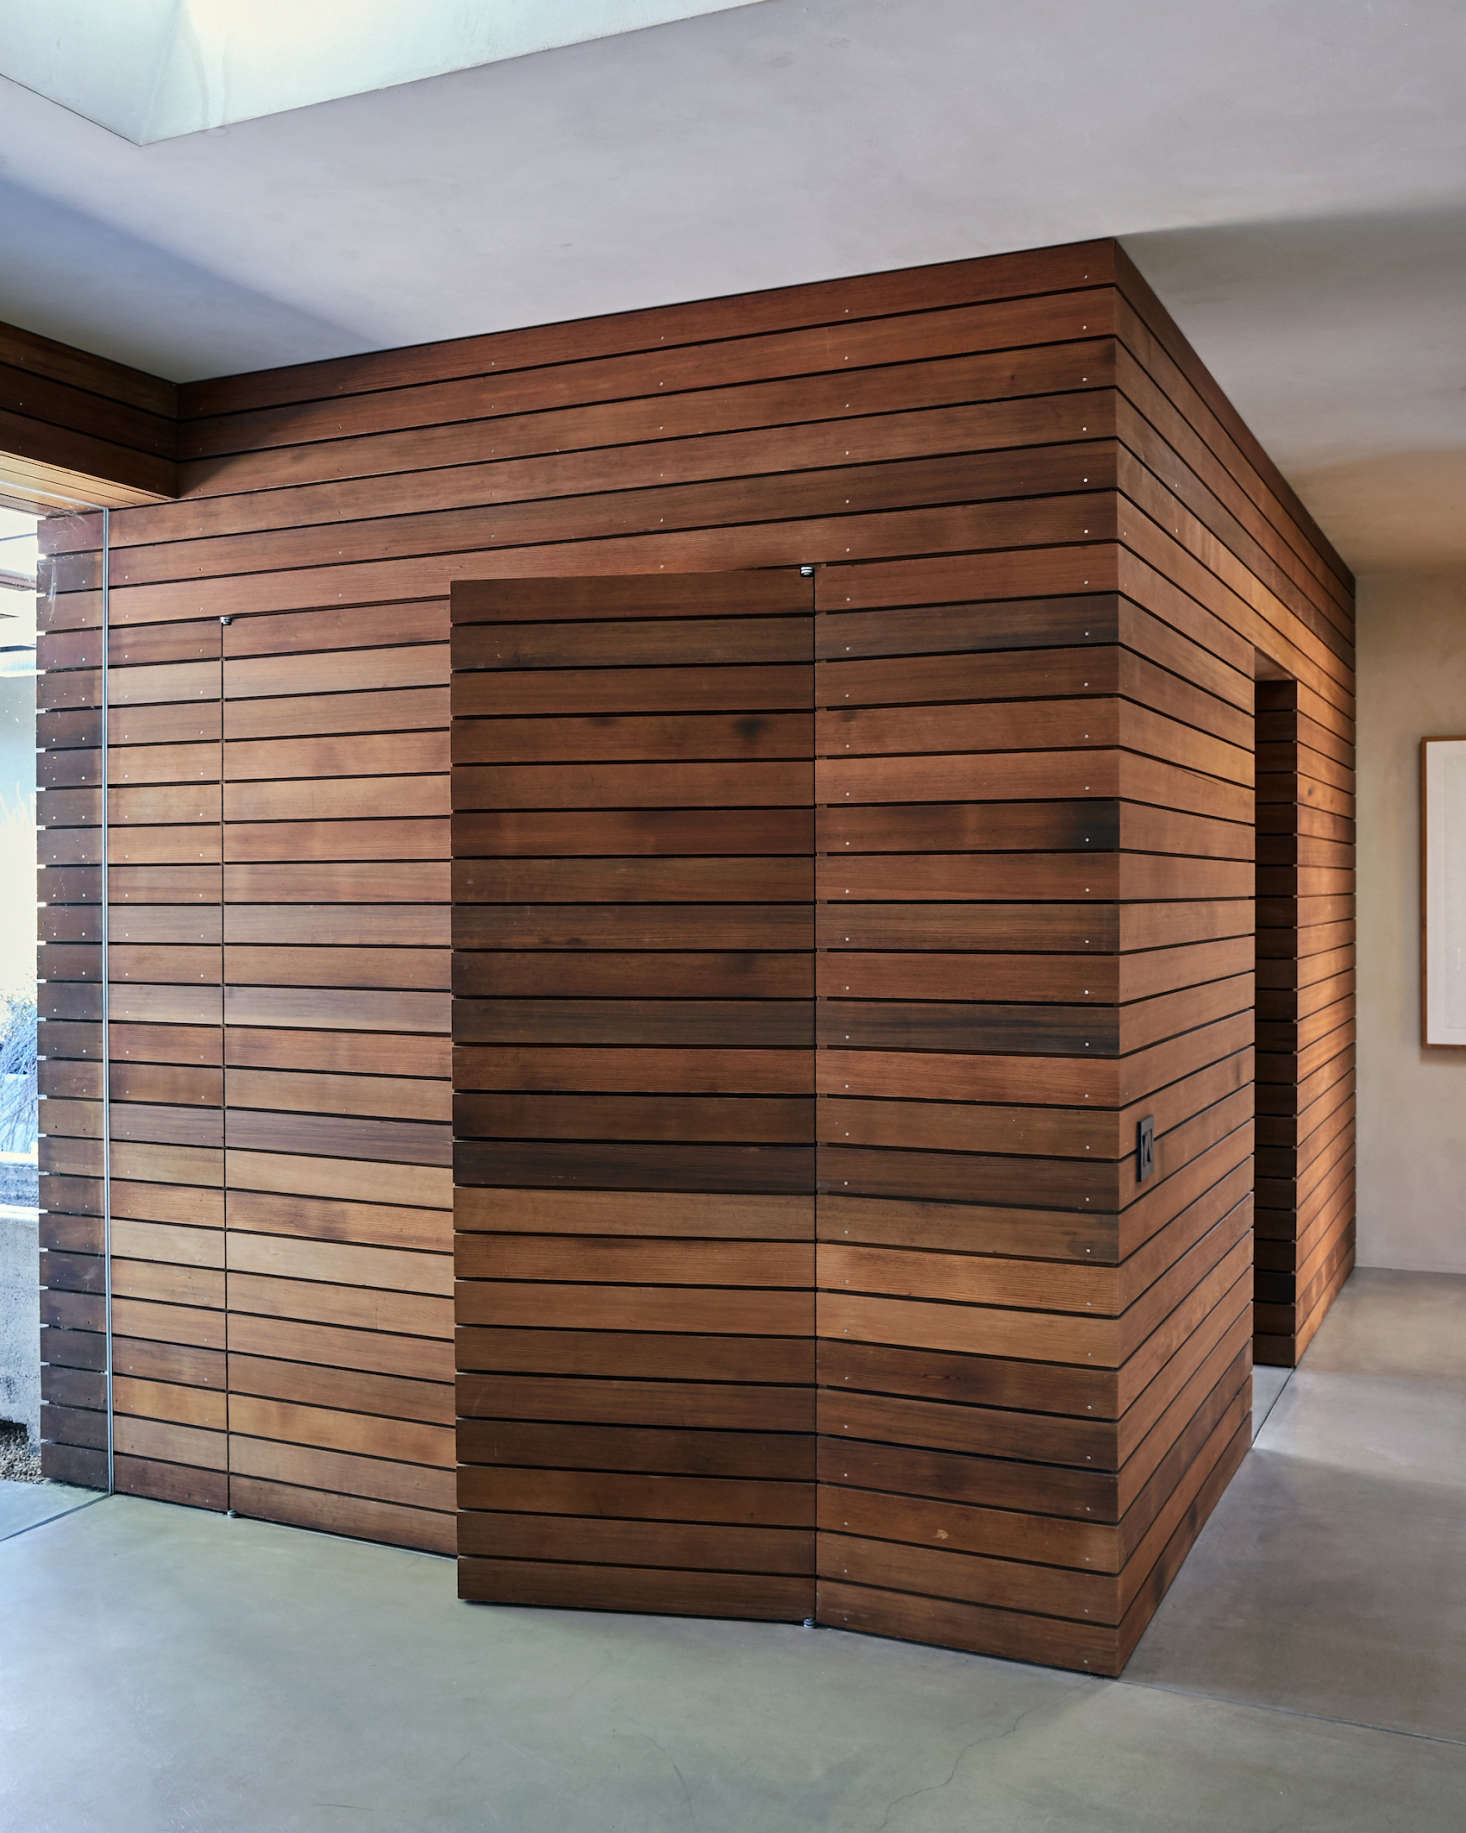 Off the foyer is a utility room (with mudroom and closets) paneled in repurposed wine-barrel redwood that extends continuously from the exterior of the house. Coat closet doors are fully integrated into the paneling: &#8